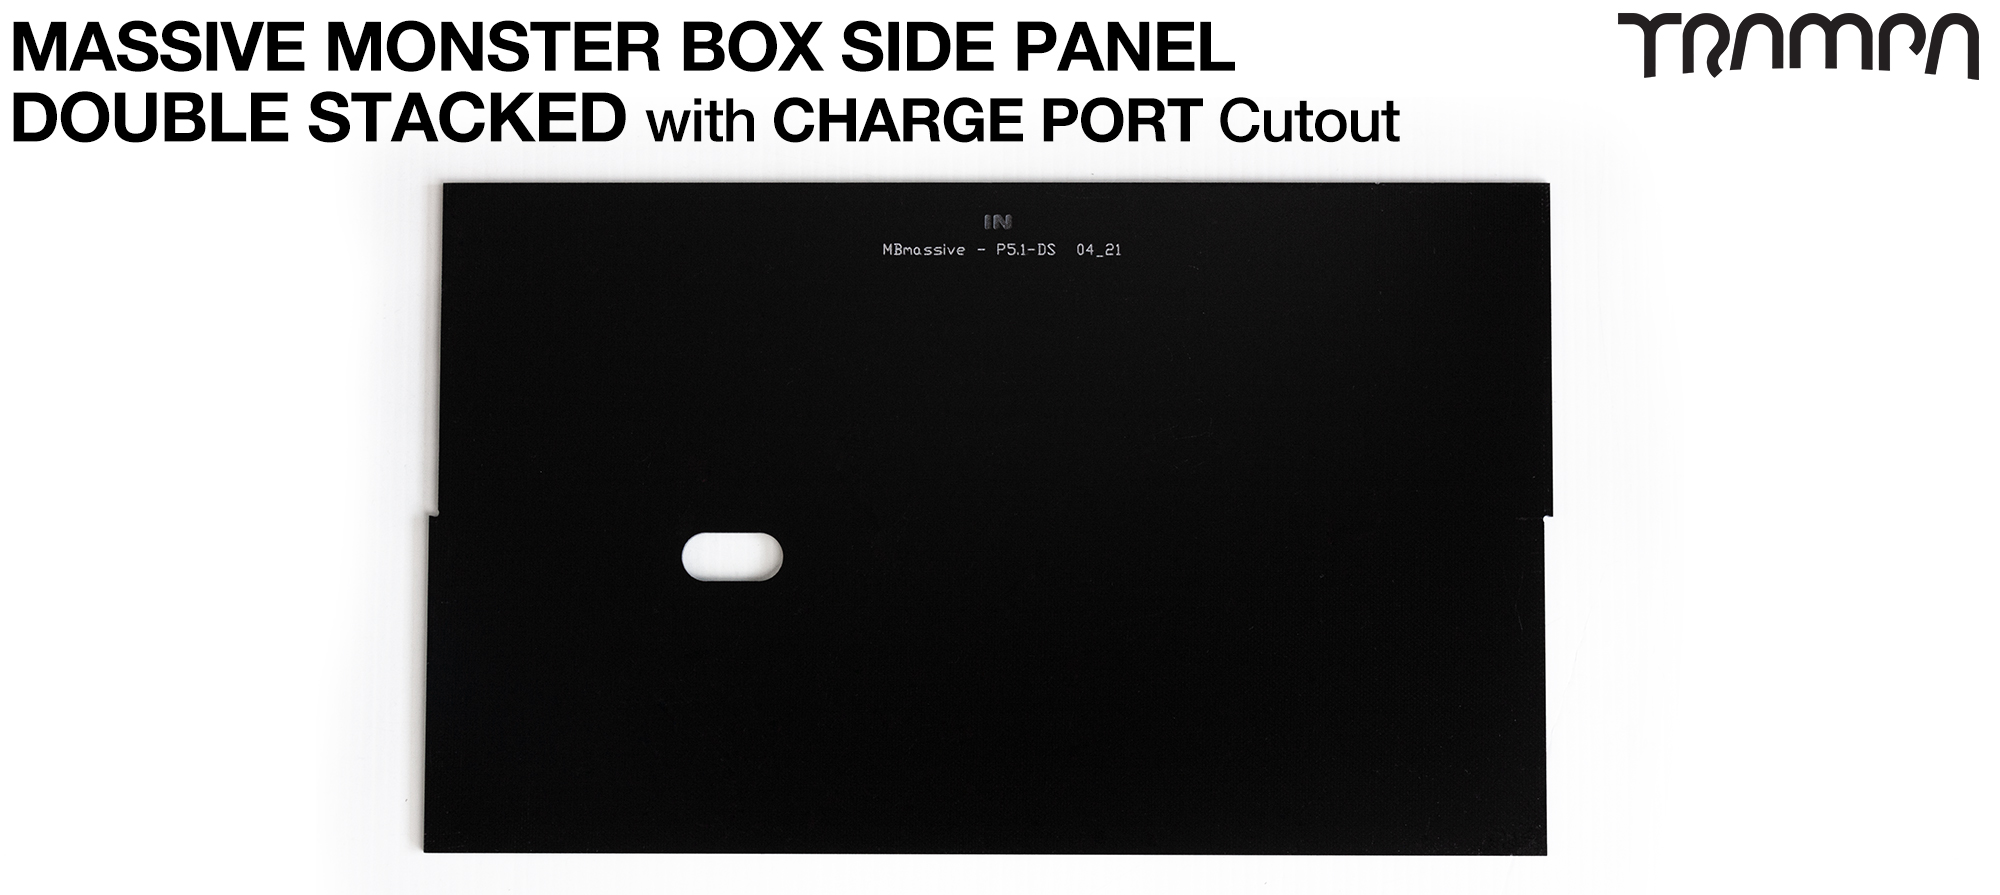 MASSIVE Monster Box 2mm DOUBLE STACK SIDE PANEL - CHARGER